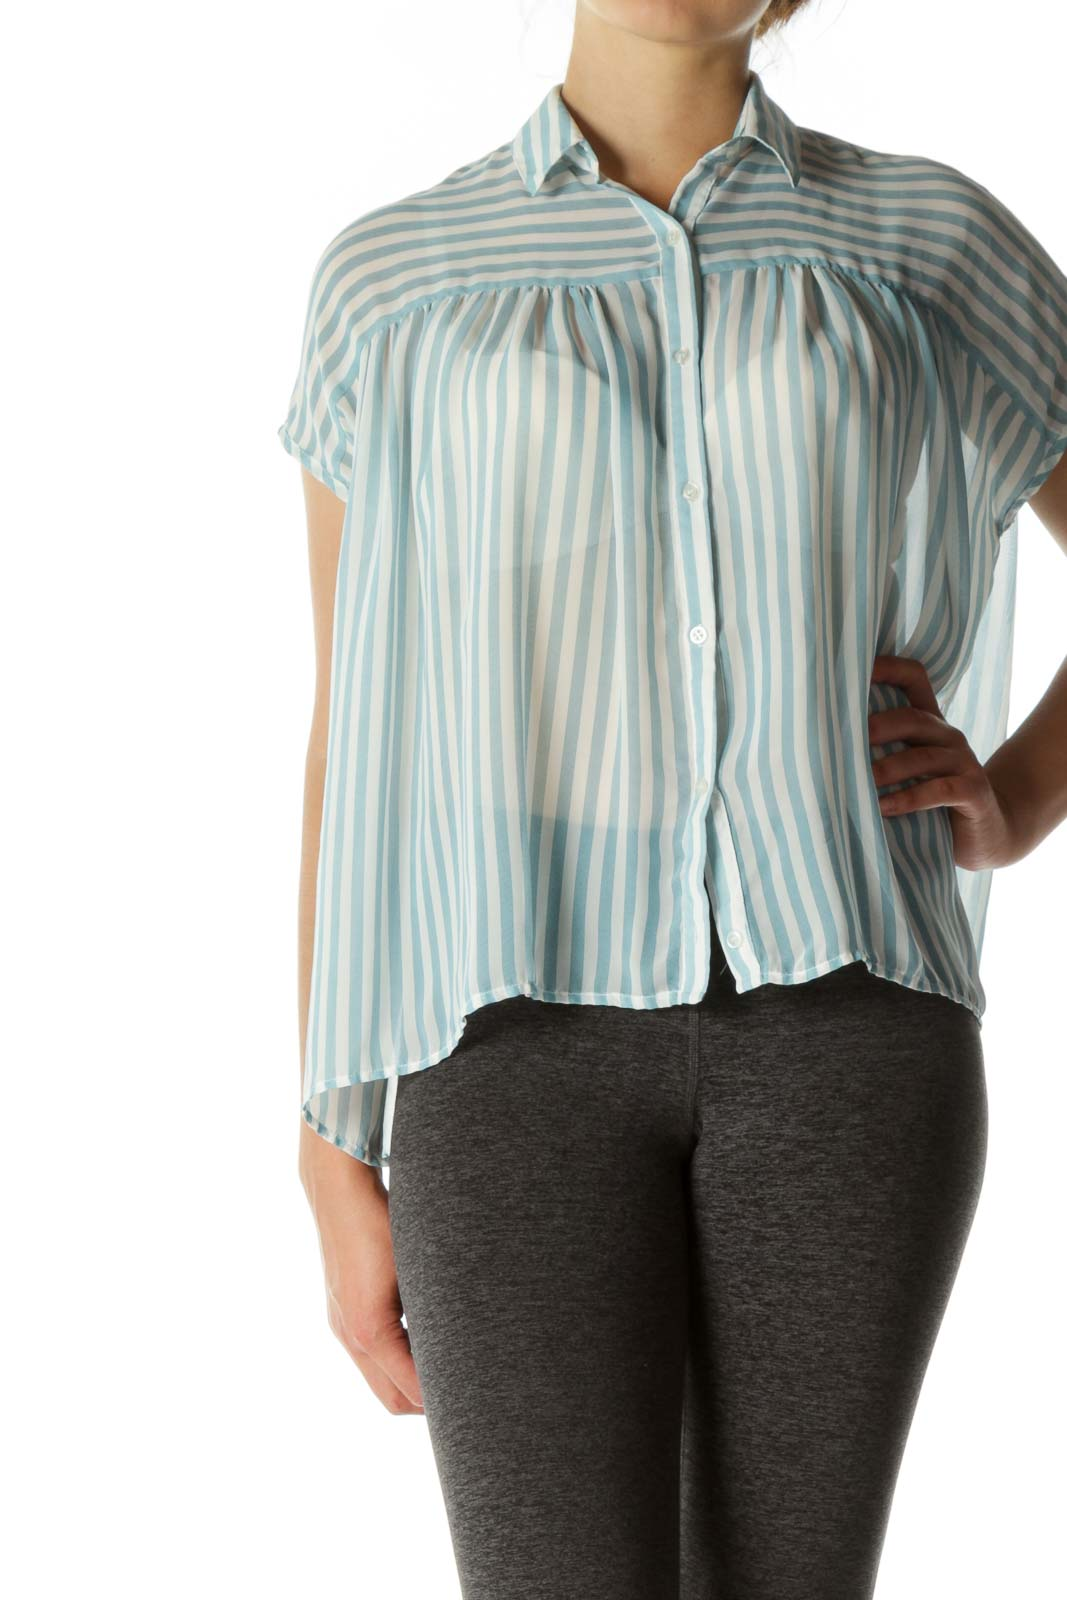 Blue White Striped Translucent Button Top Front